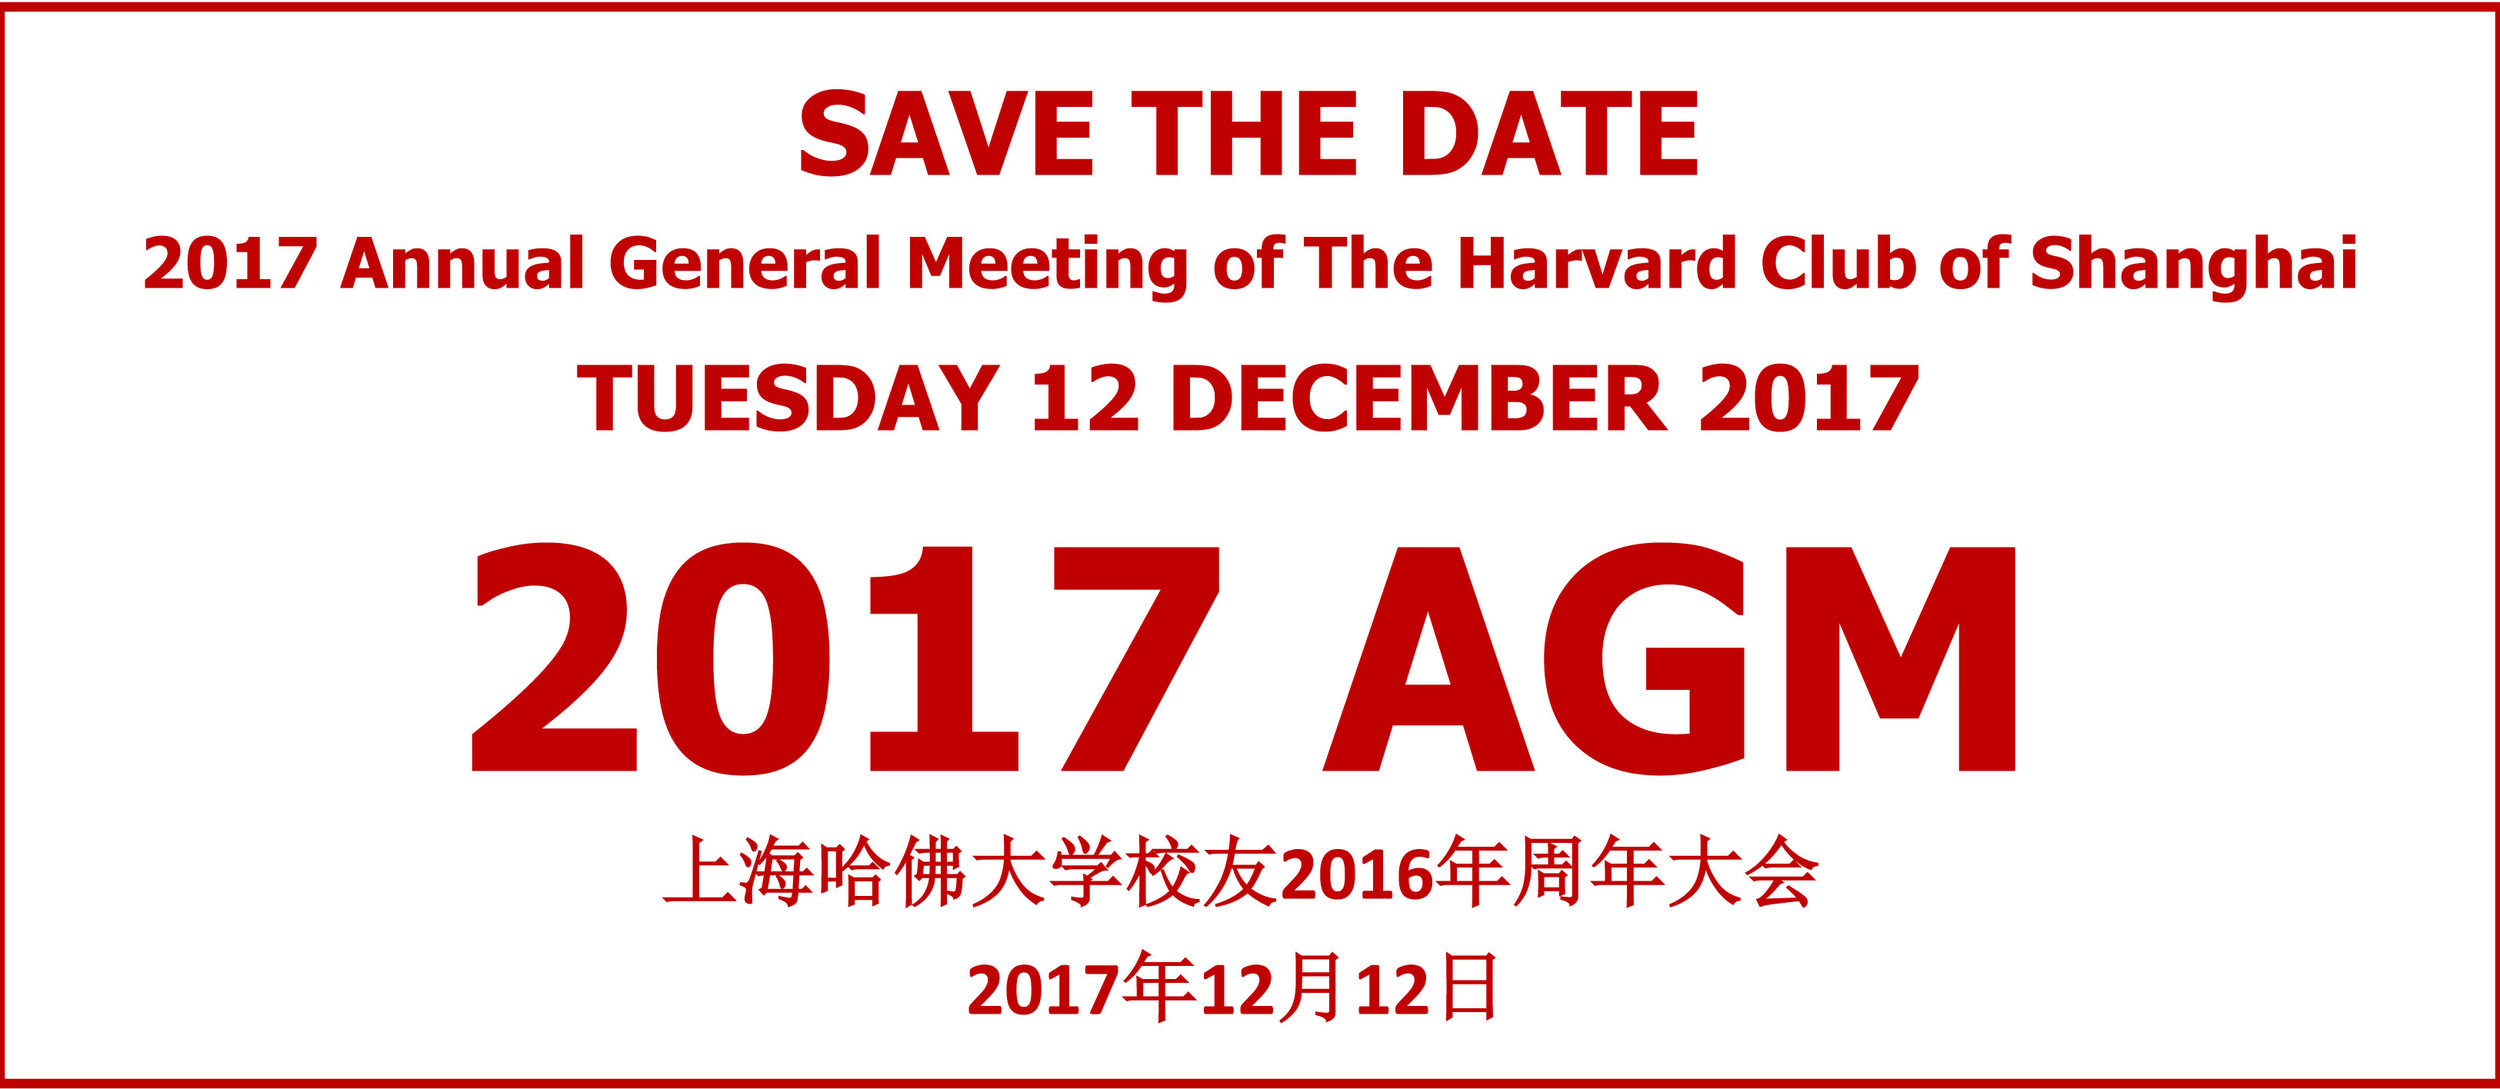 2017AGM_Savethedate.jpg